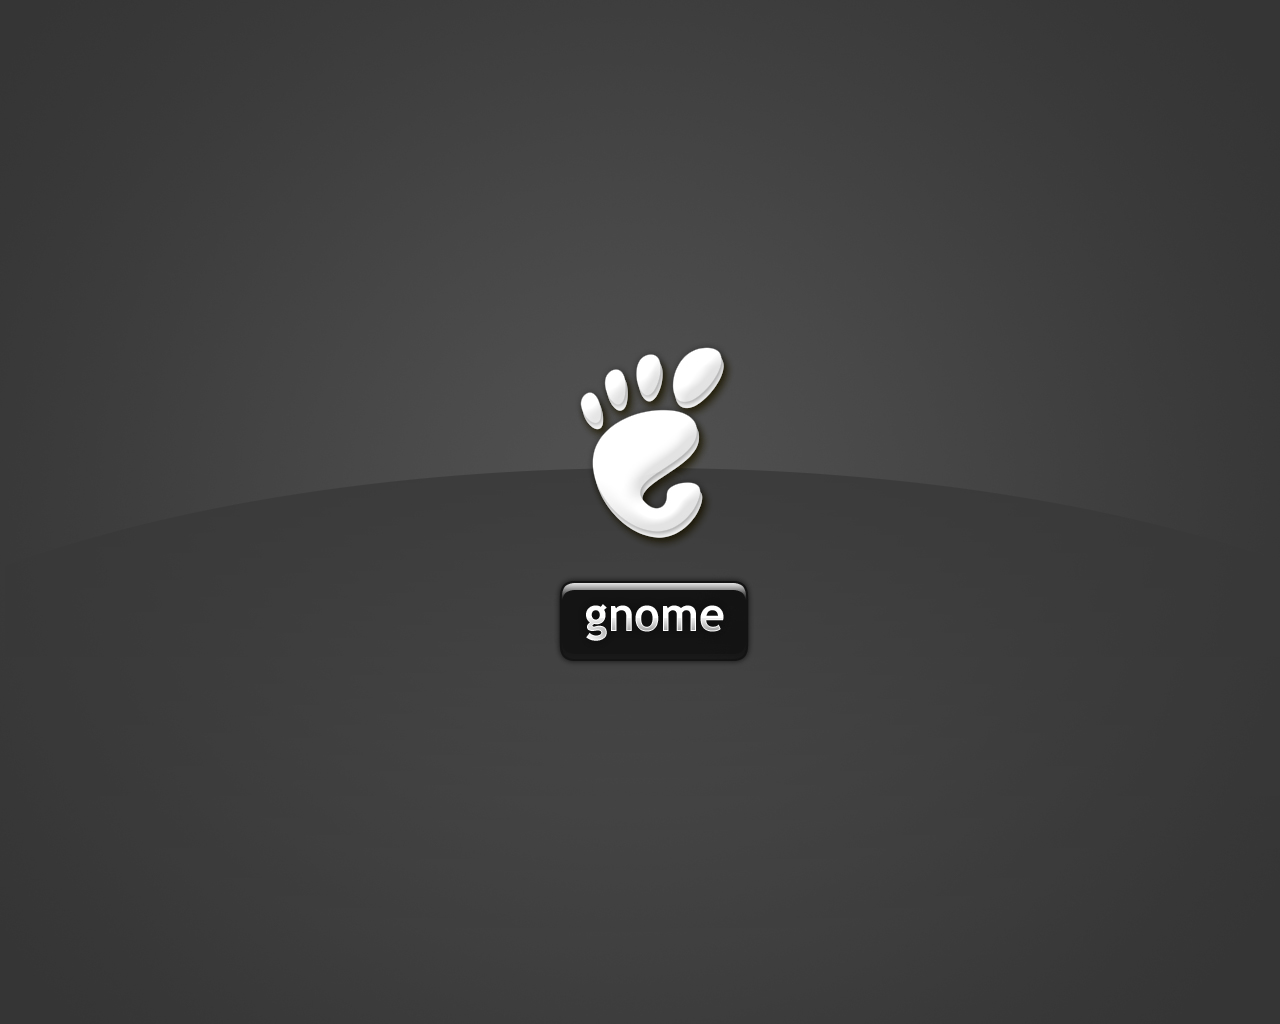 Gnome, Linux, RedHat - Wallpapers - GDI Gnome